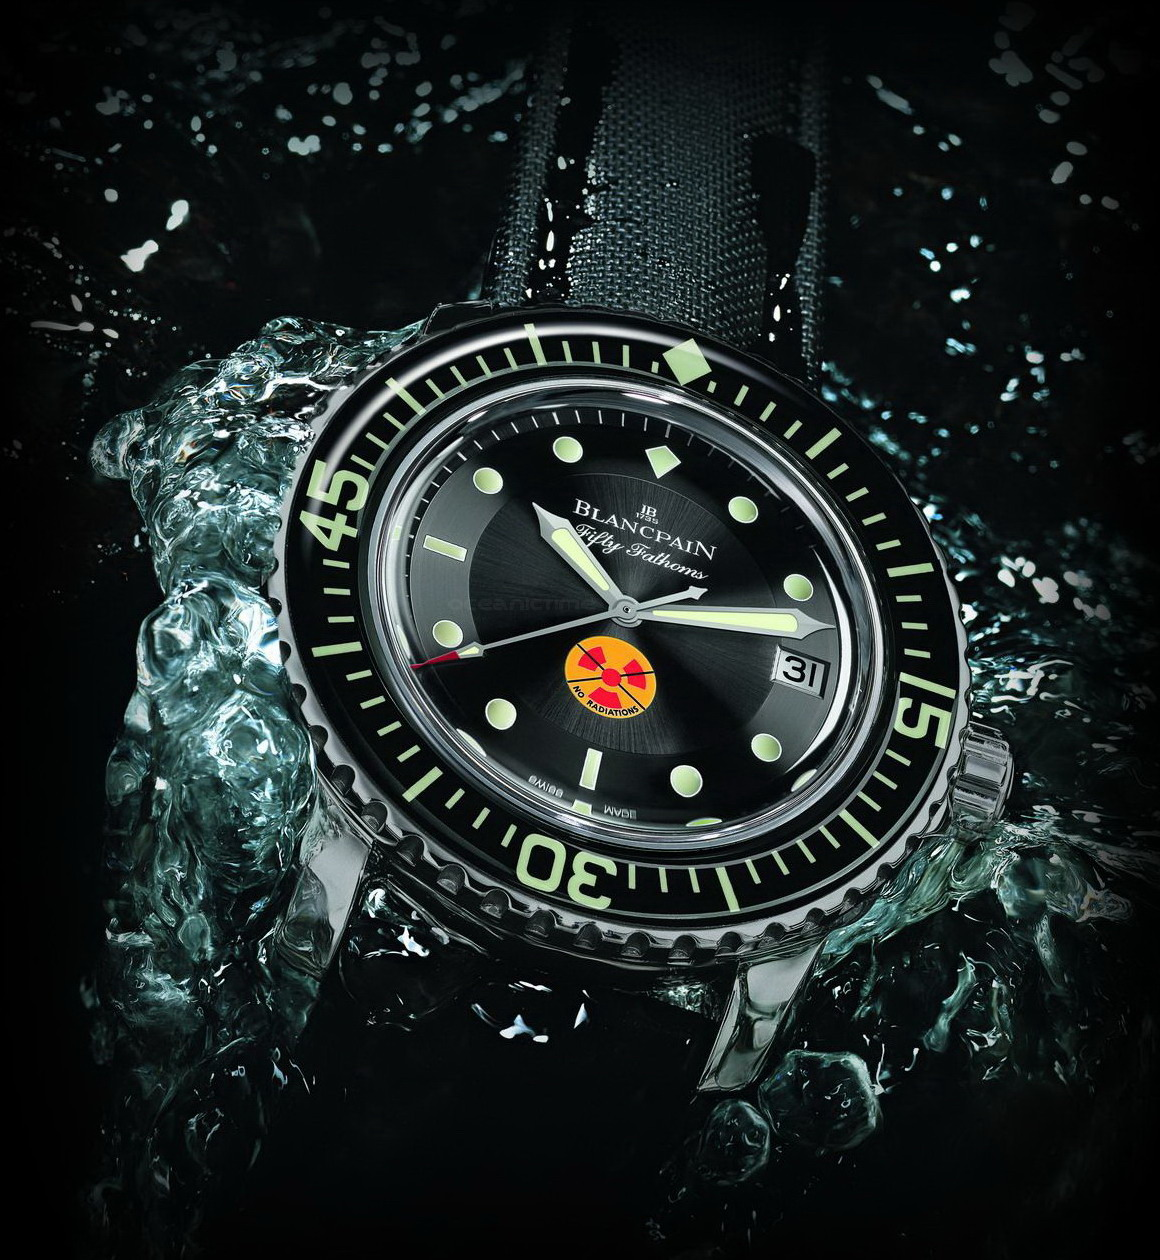 Vuestro favorito del día - Página 40 BLANCPAIN+Tribute+to+Fifty+Fathoms+(water)